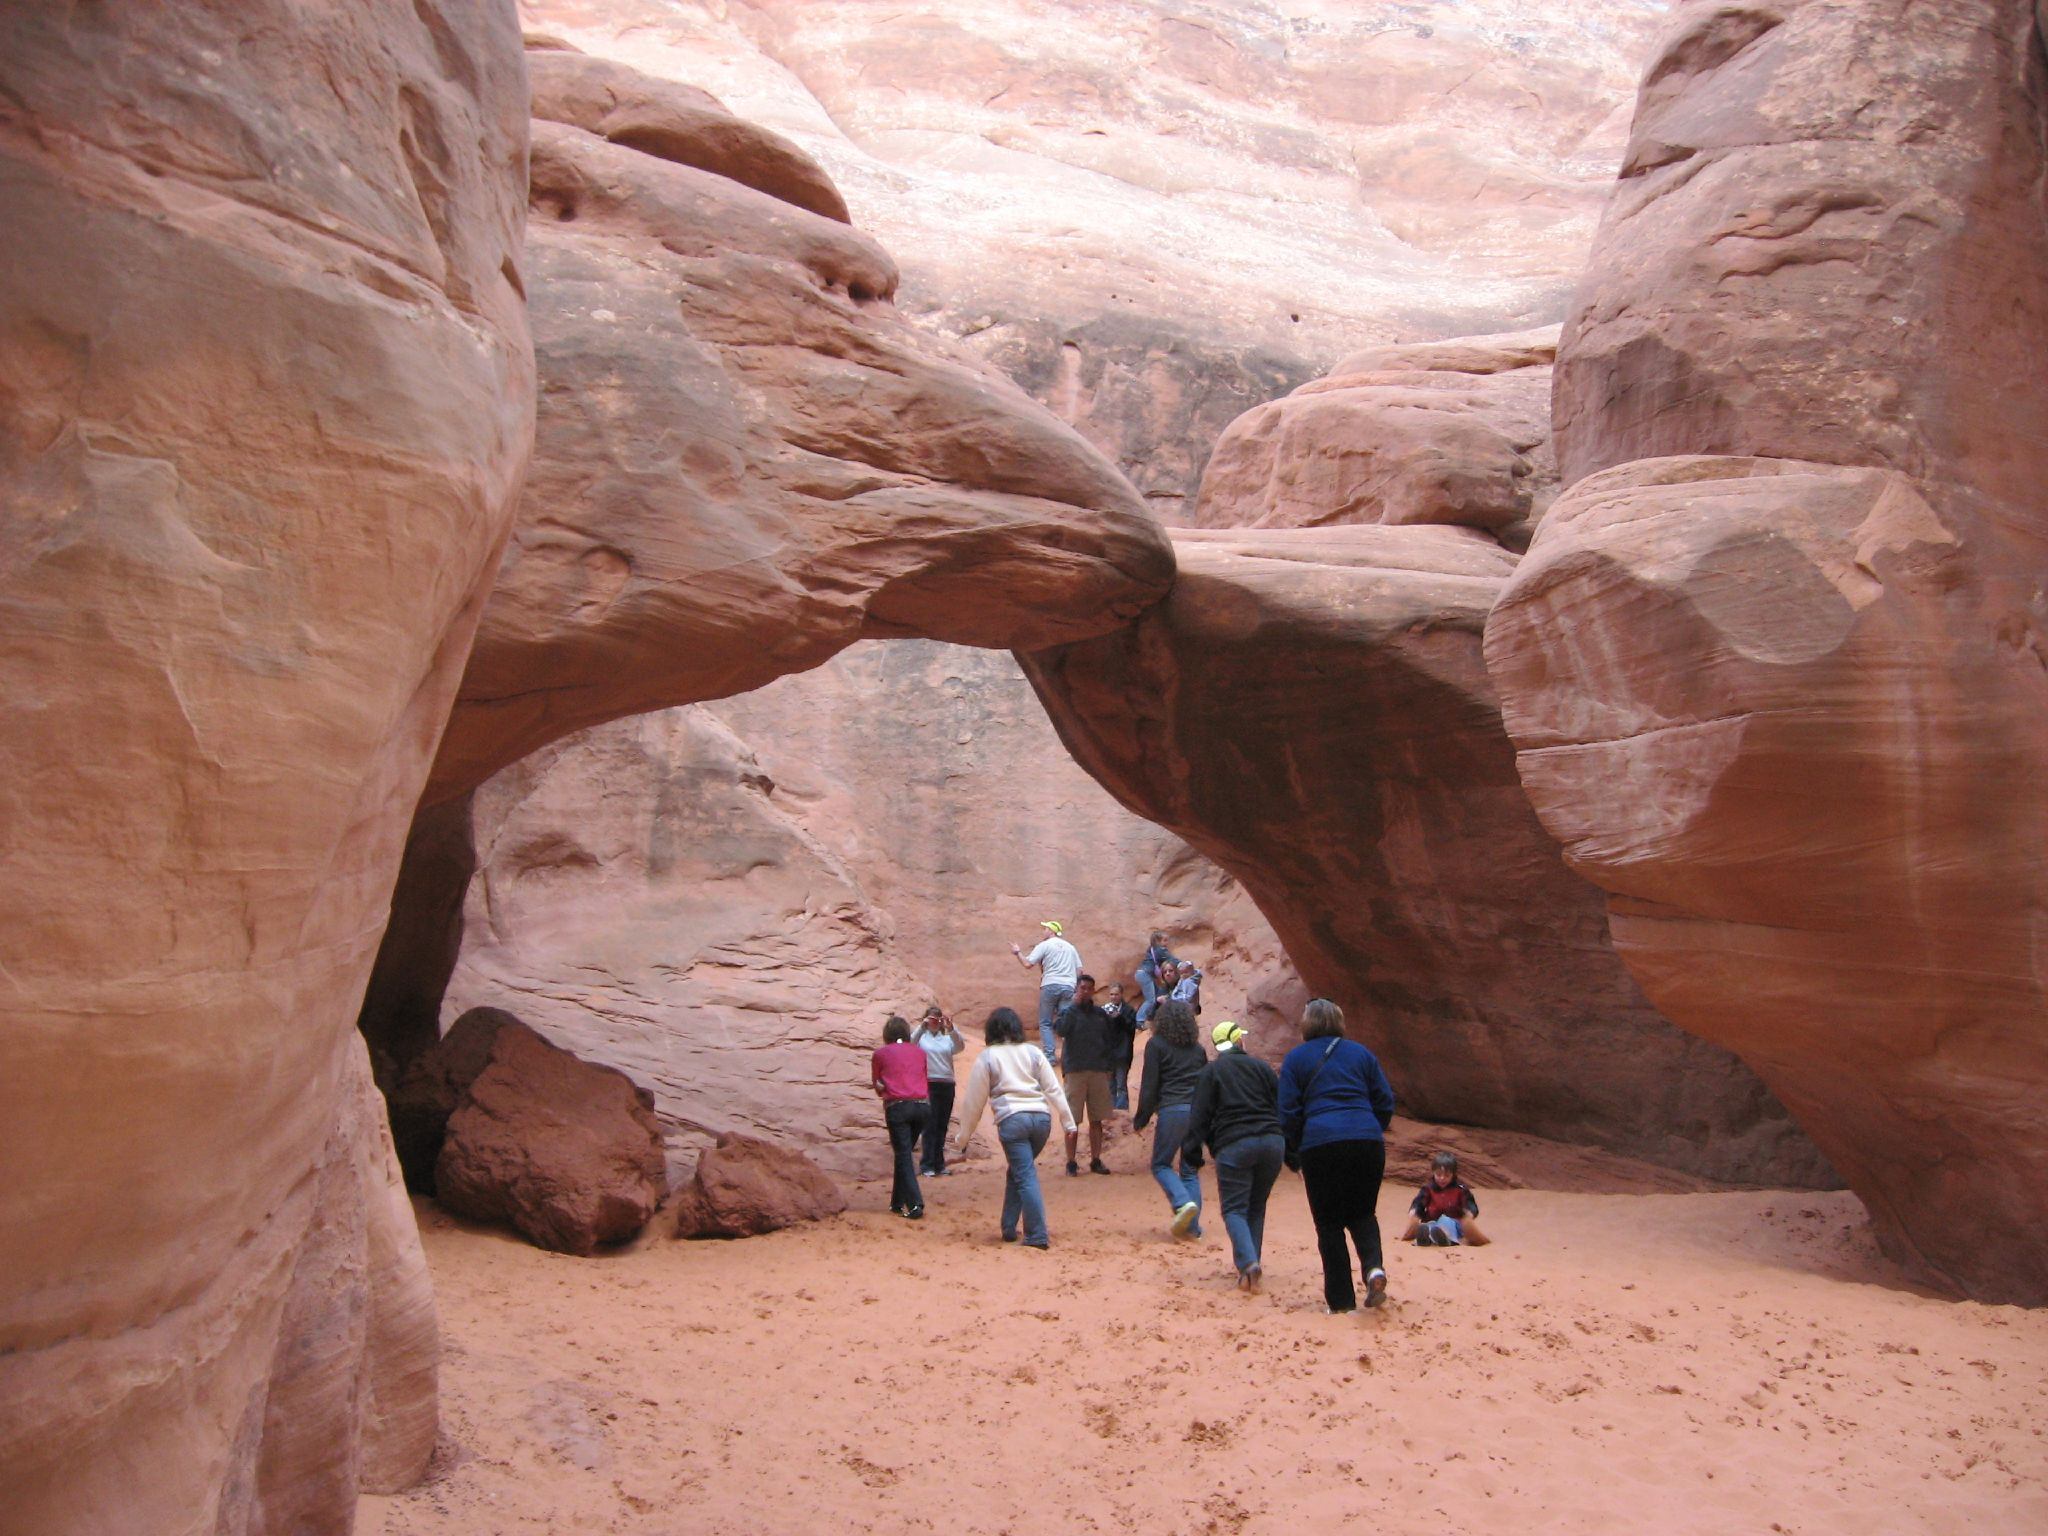 Sand_Dune_Arch_is_Crowded_This_Day%2C_Arches_National_Park%2C_Utah_%282438778597%29.jpg